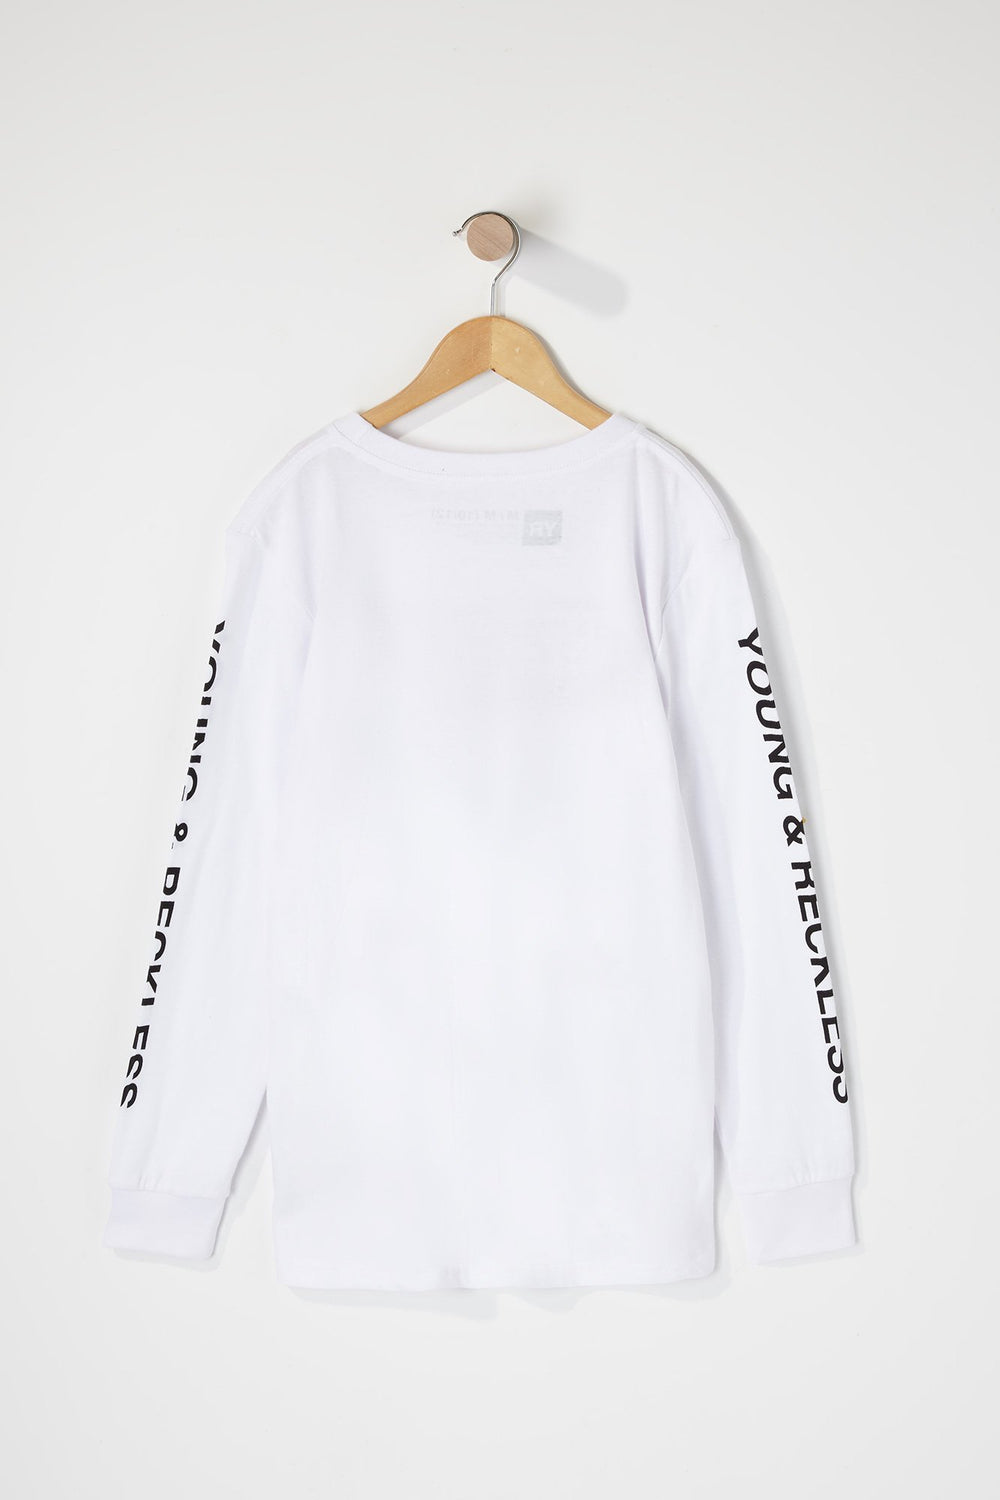 Young & Reckless Boys Red Box Logo Long Sleeve Shirt White